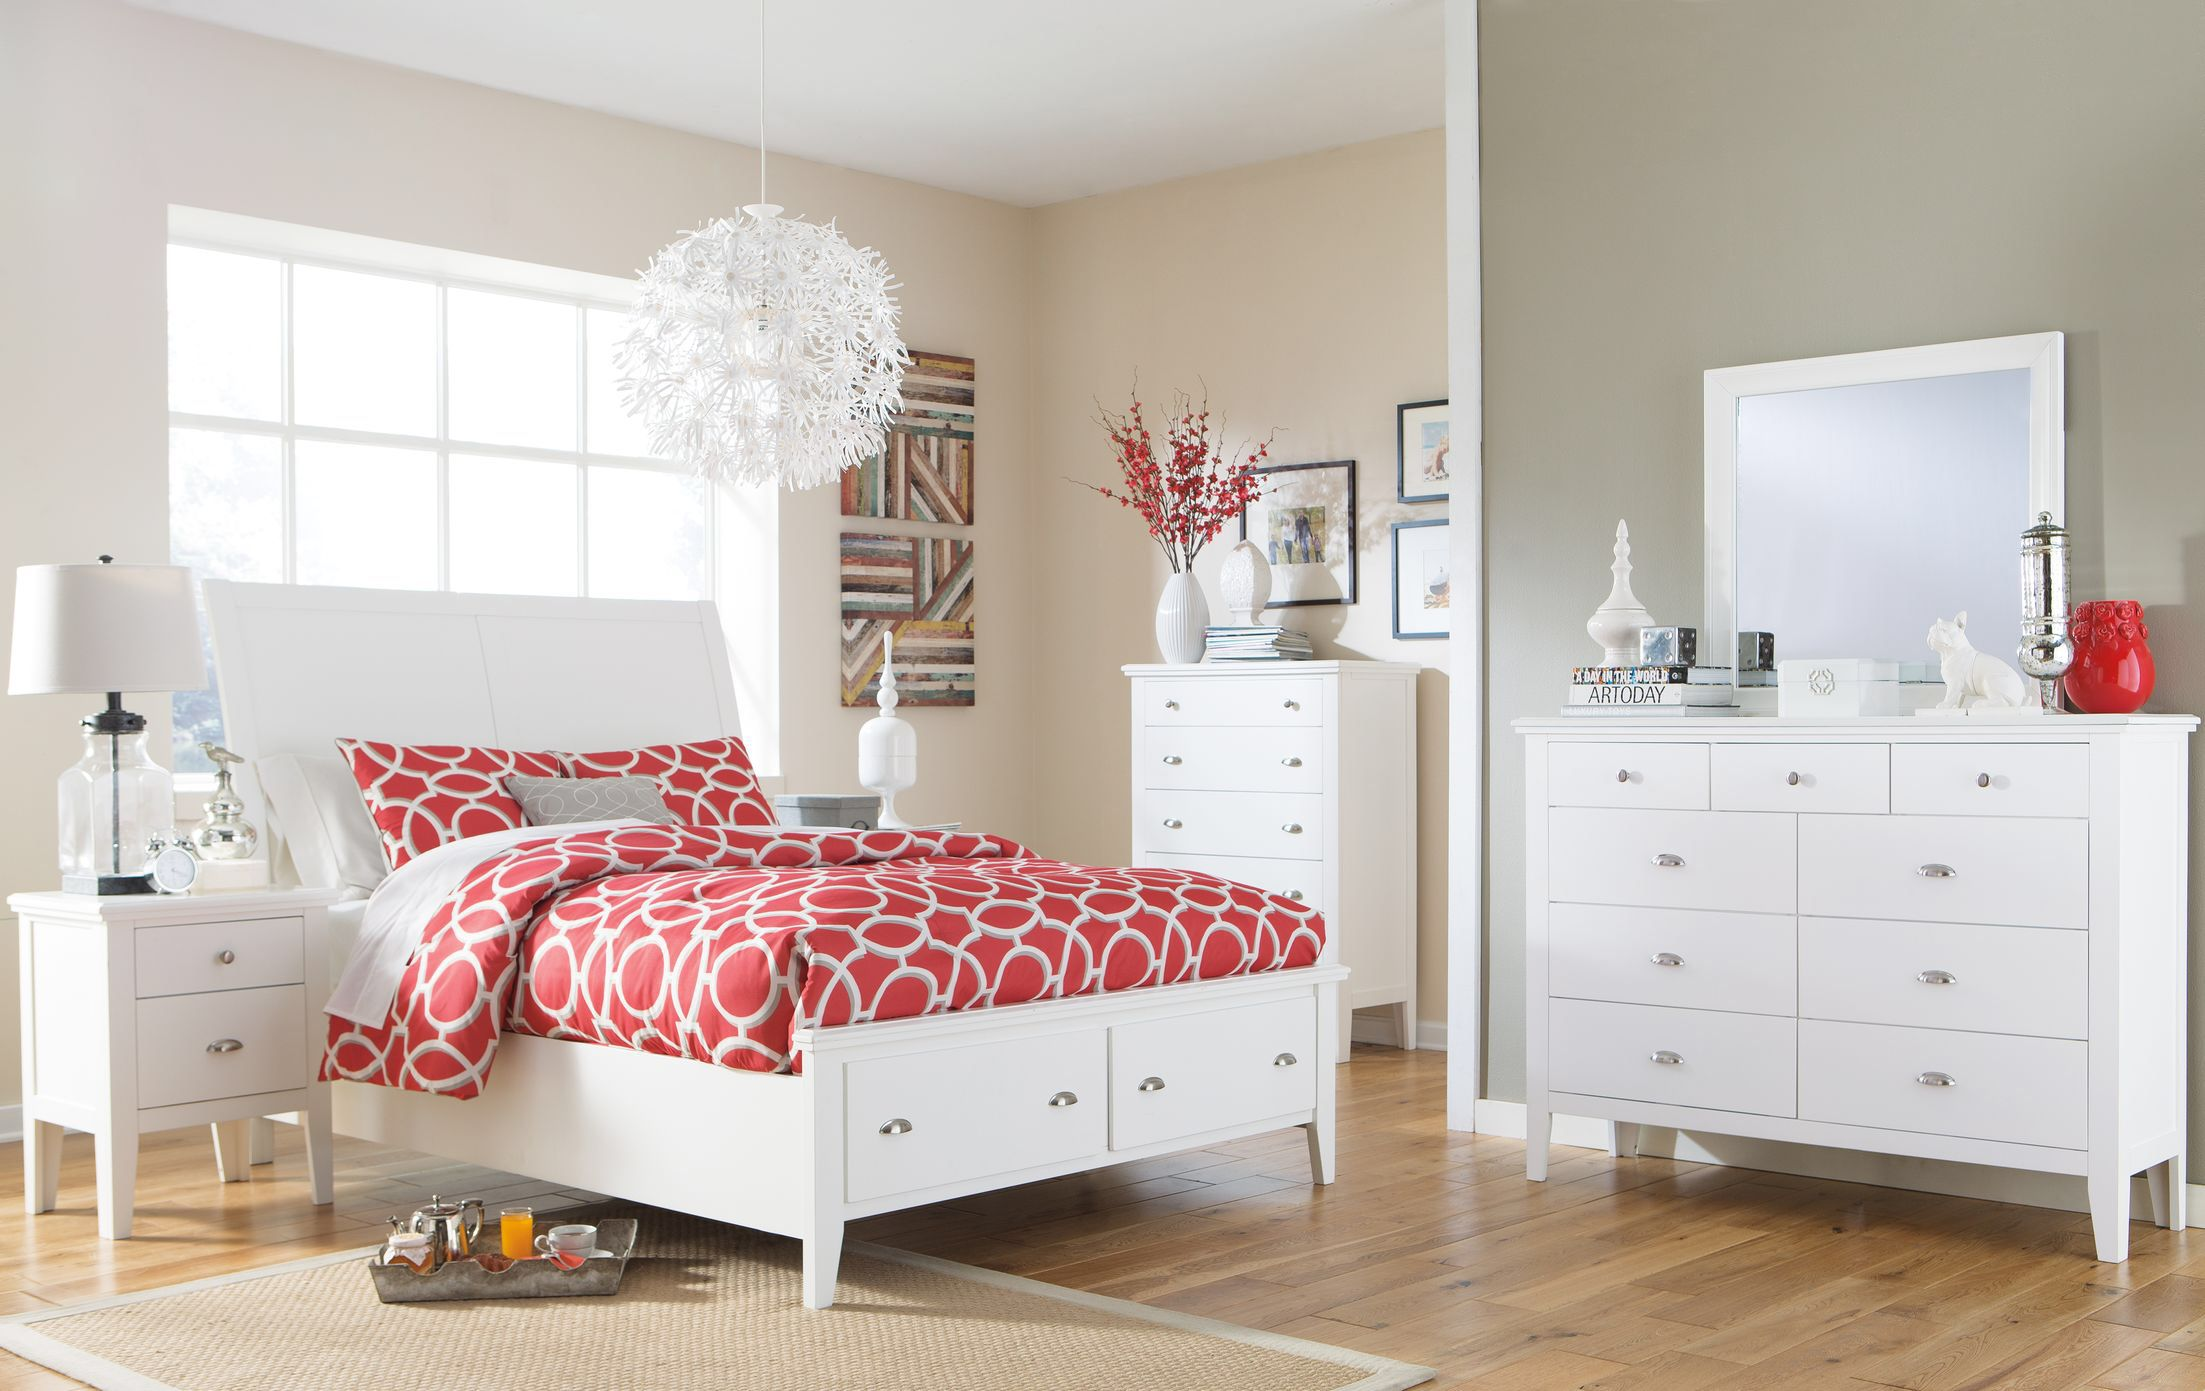 Langlor storage sleigh bedroom collection home mbr pinterest